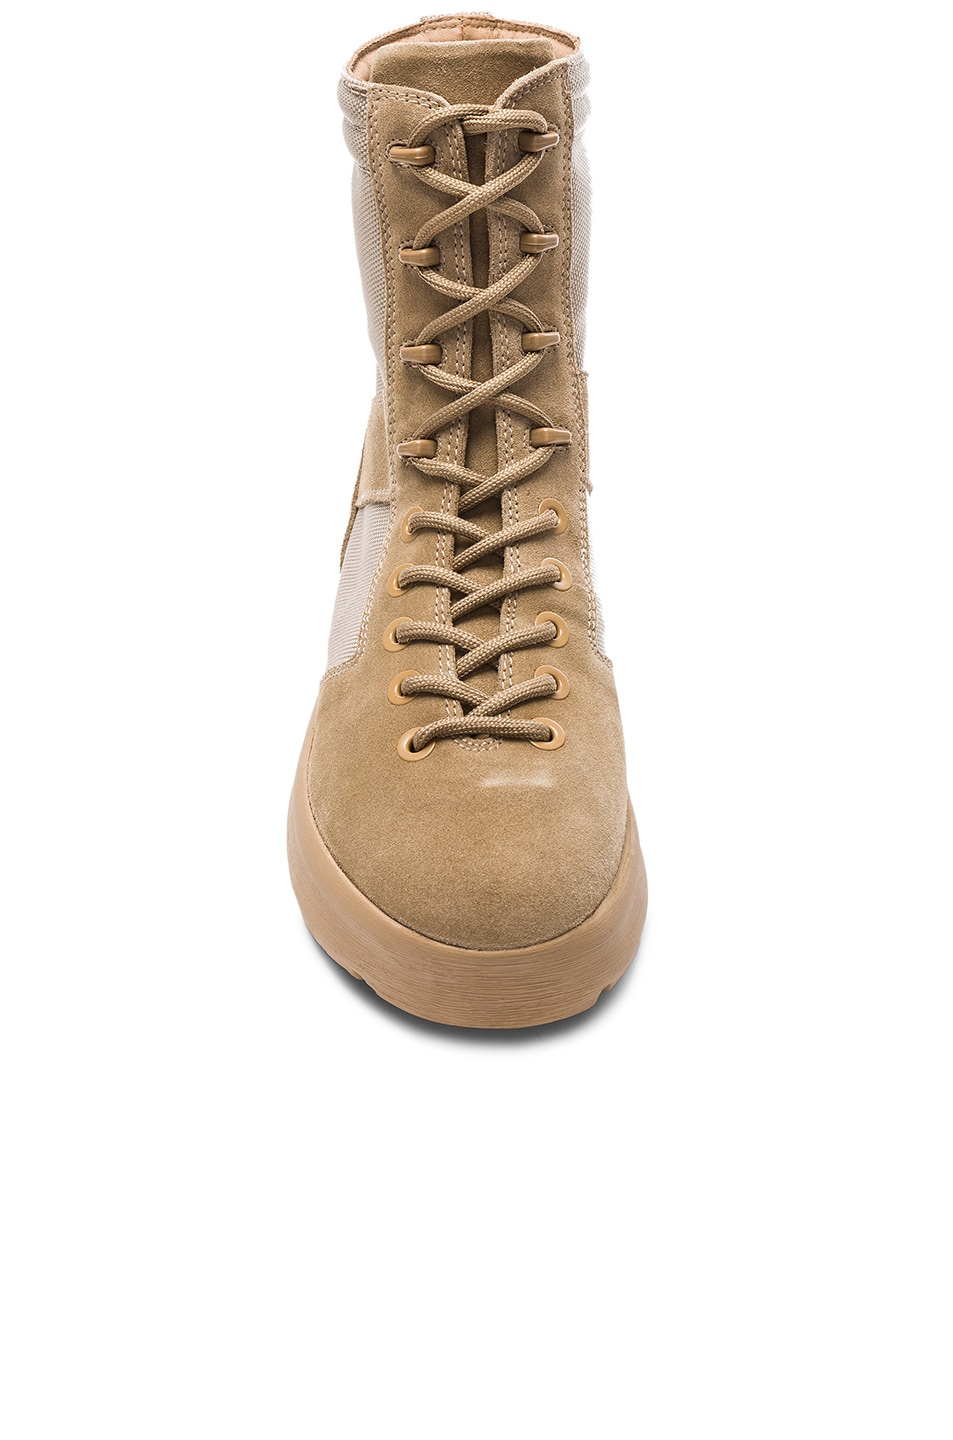 34771e63a00 Image 4 of YEEZY Season 3 Military Boots in Rock